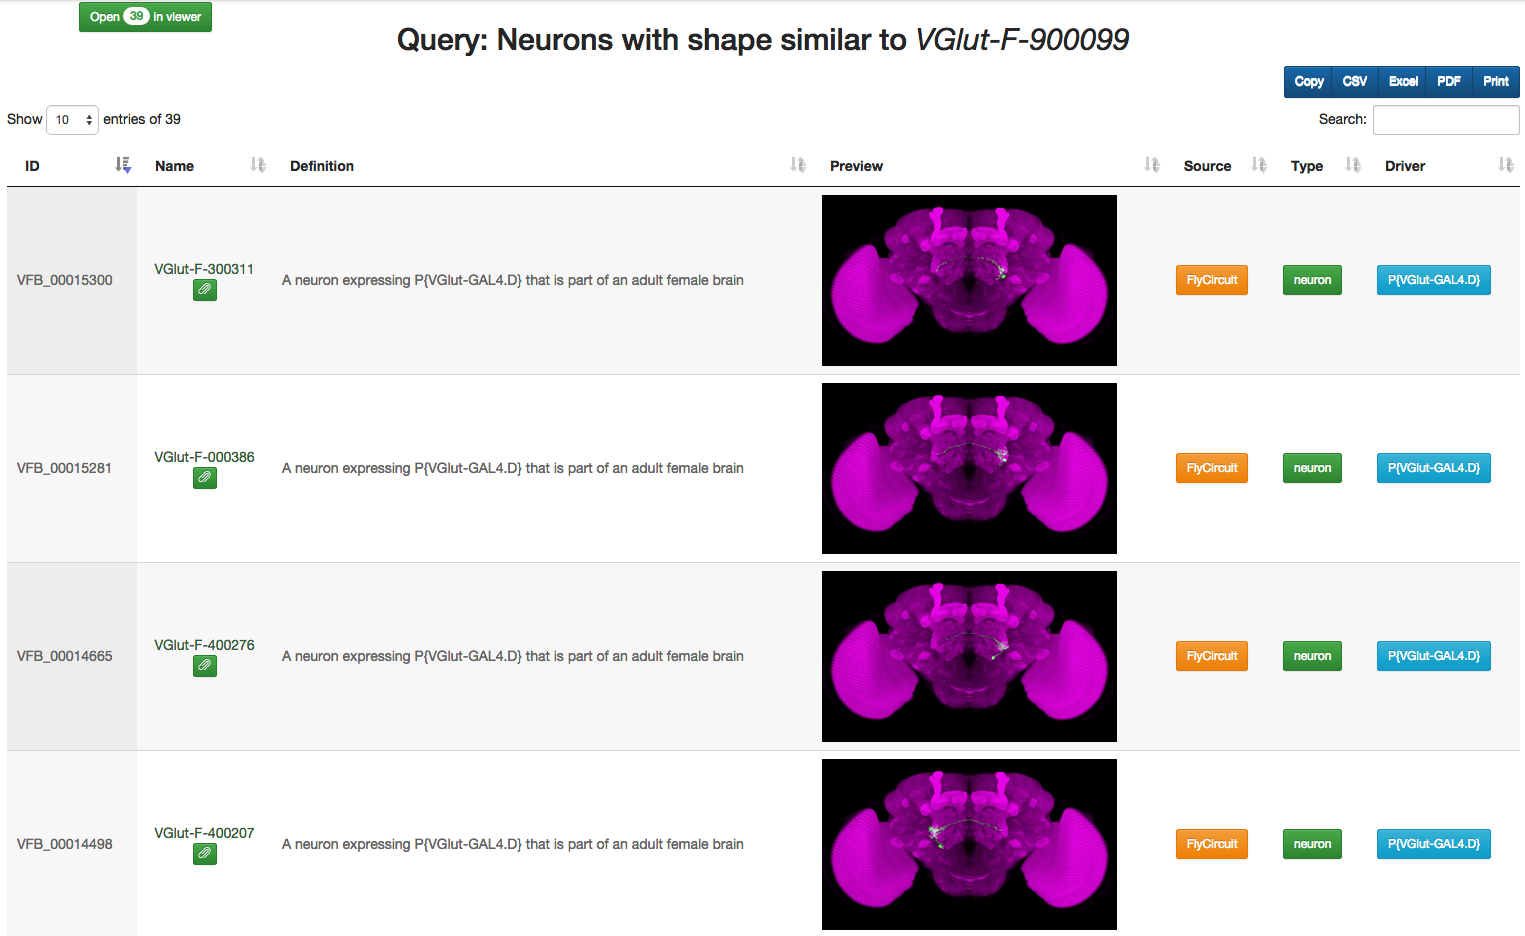 All neurons in a cluster with annotations